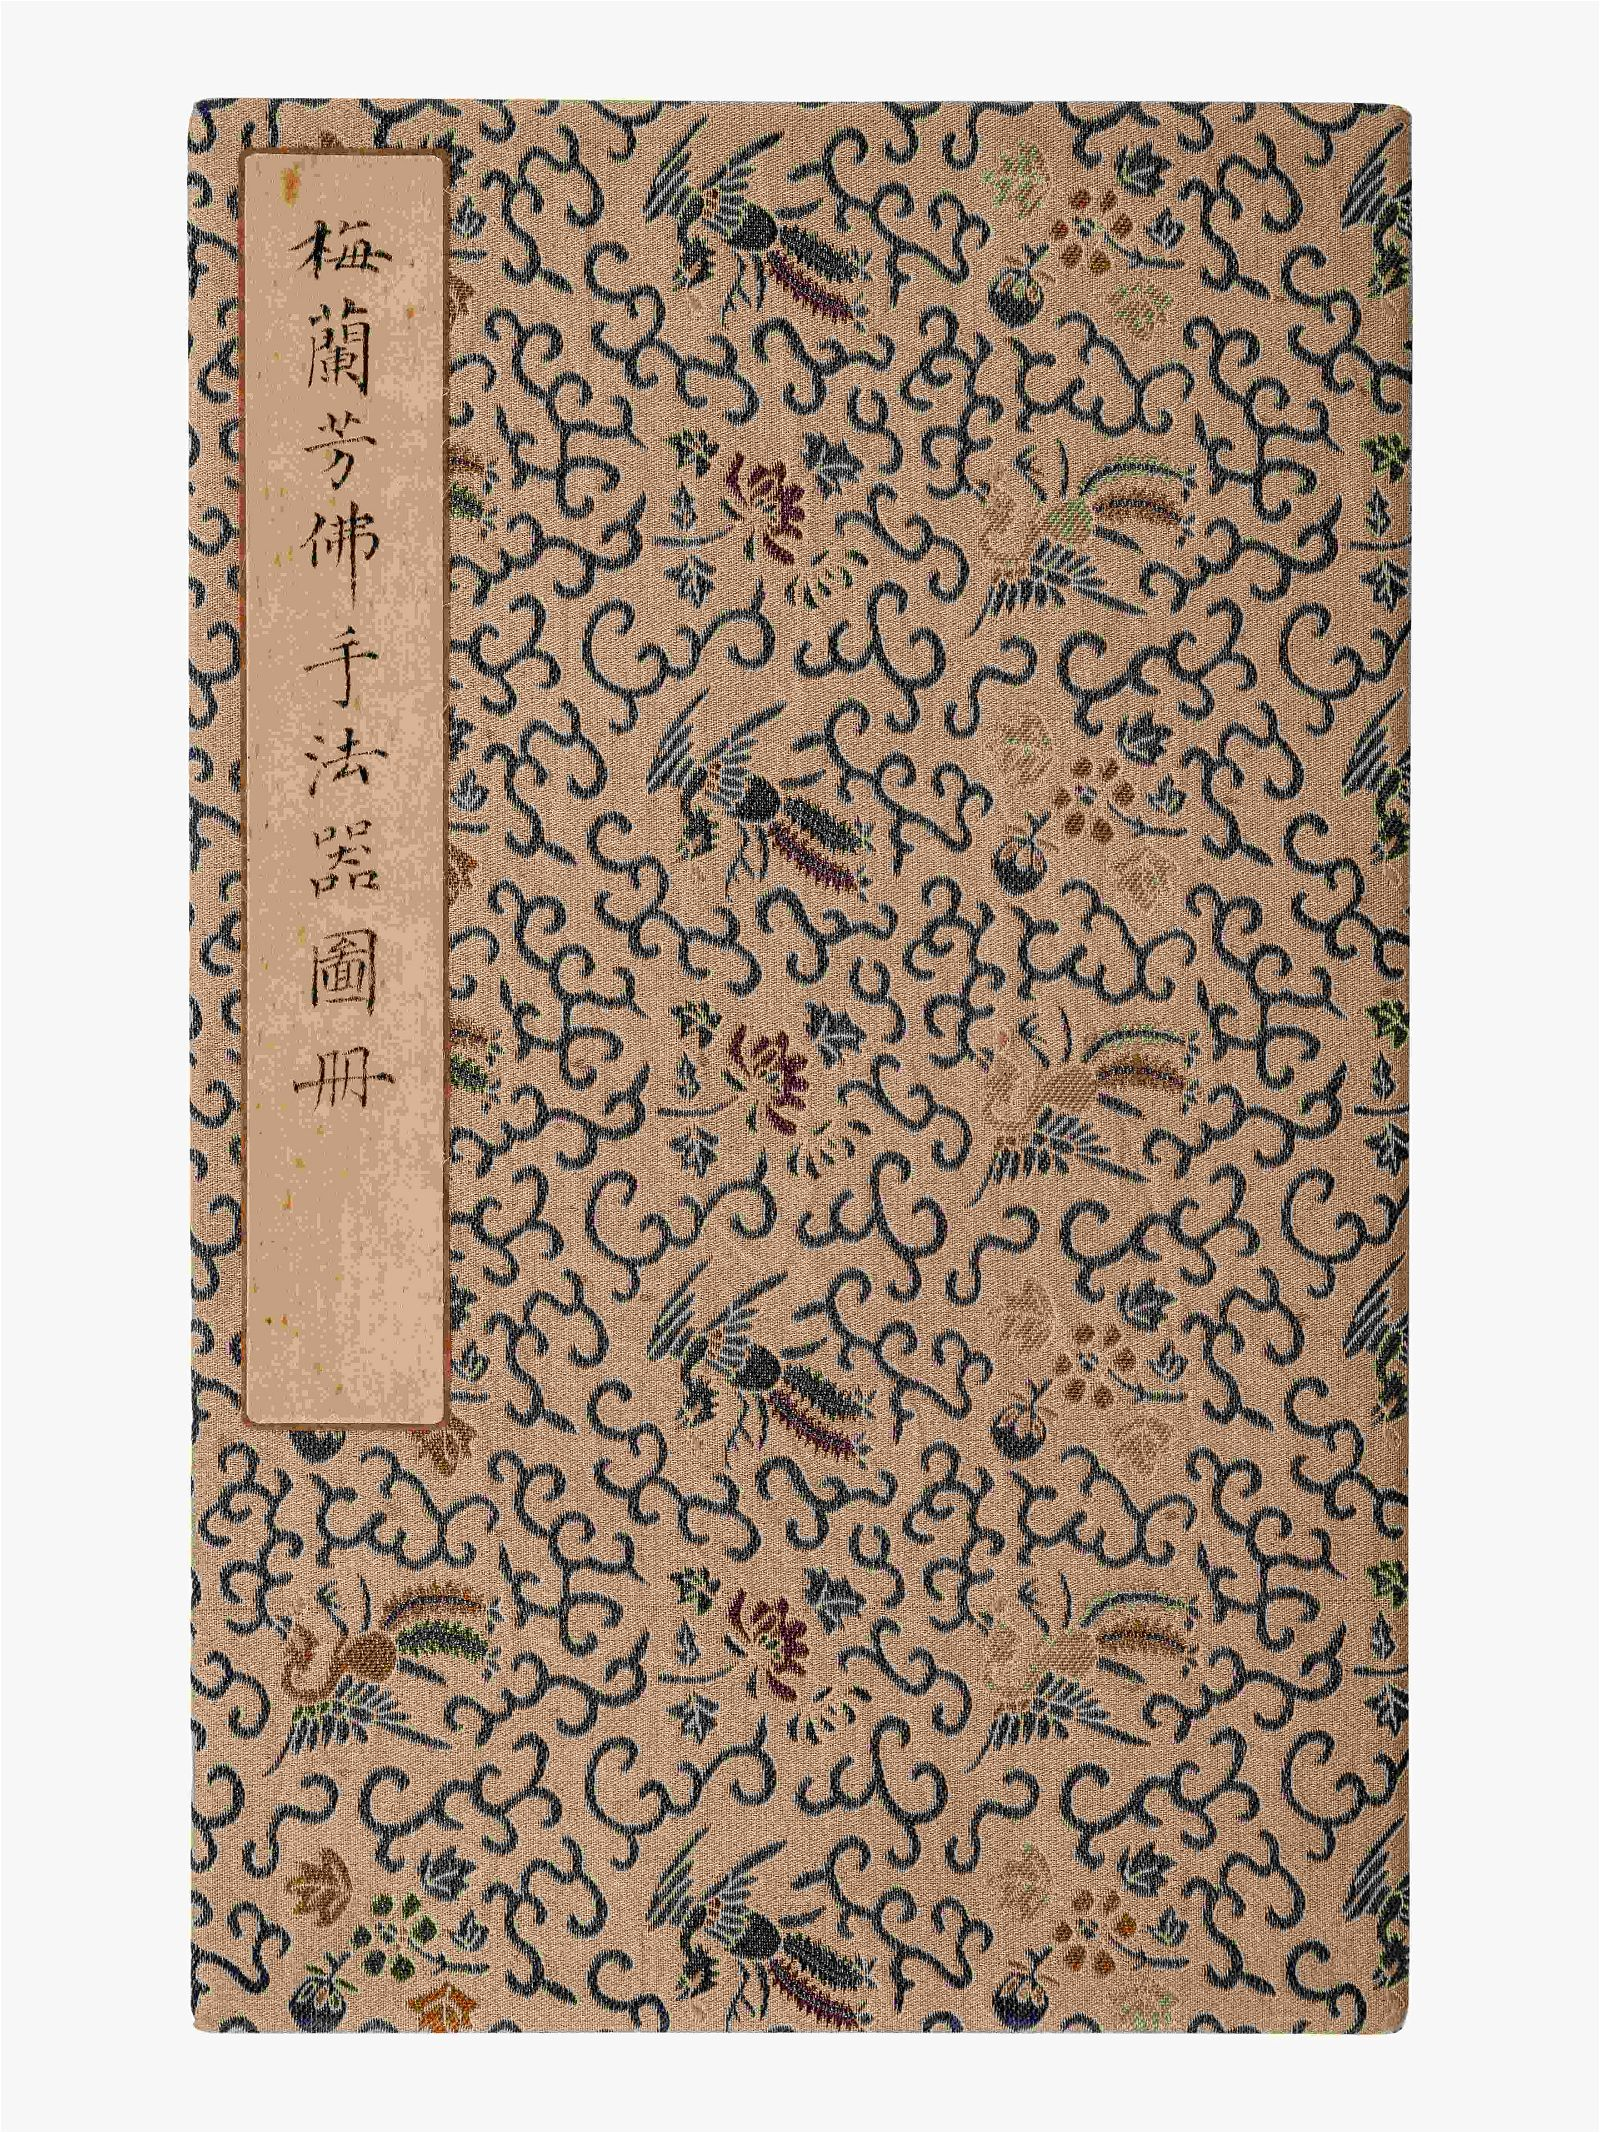 Attributed to Mei Lanfang